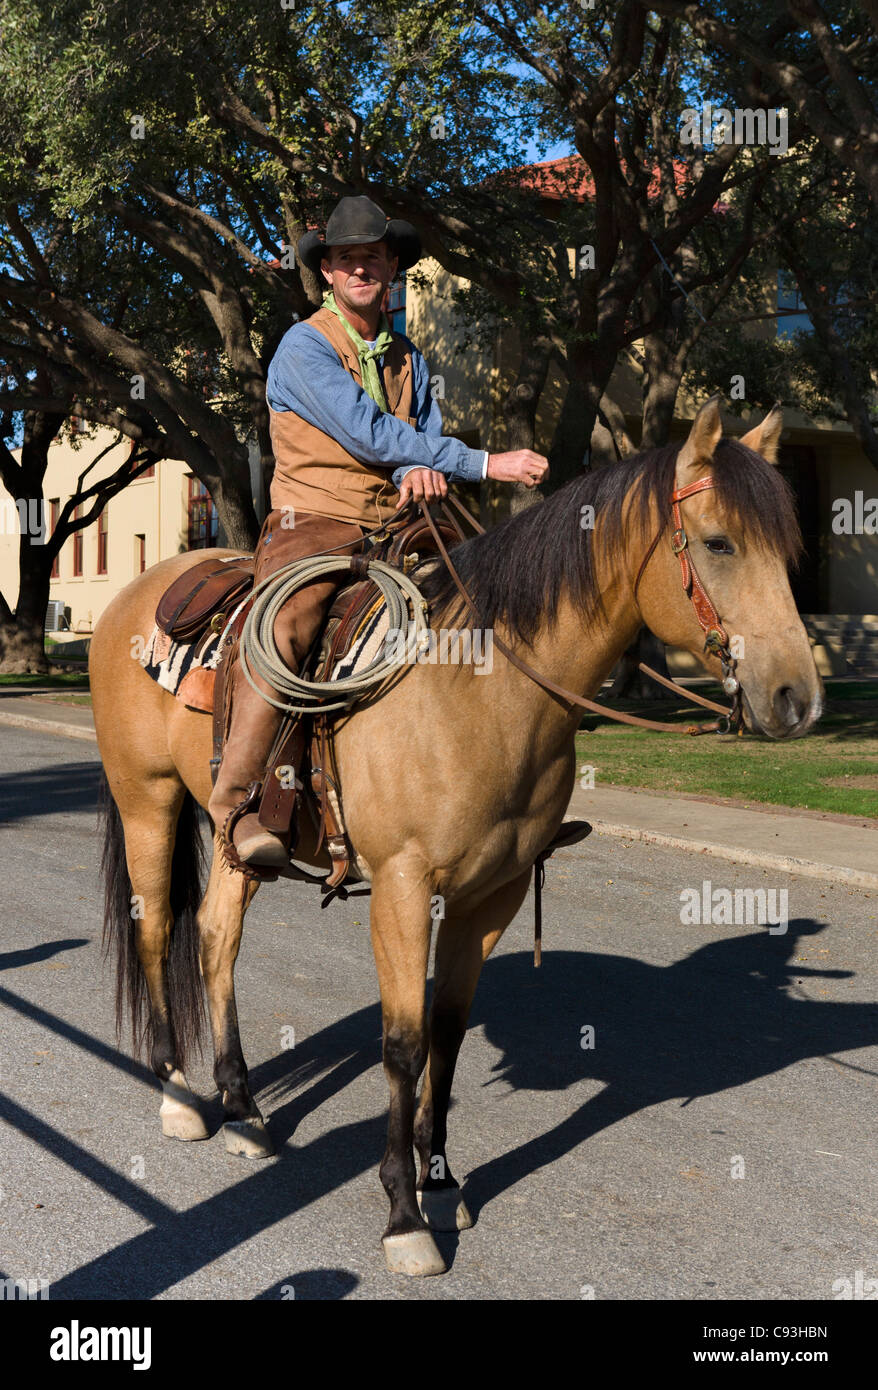 Cowboy on horseback outside the Cowtown Coliseum, Exchange Avenue, Stockyards District, Fort Worth, Texas, USA - Stock Image